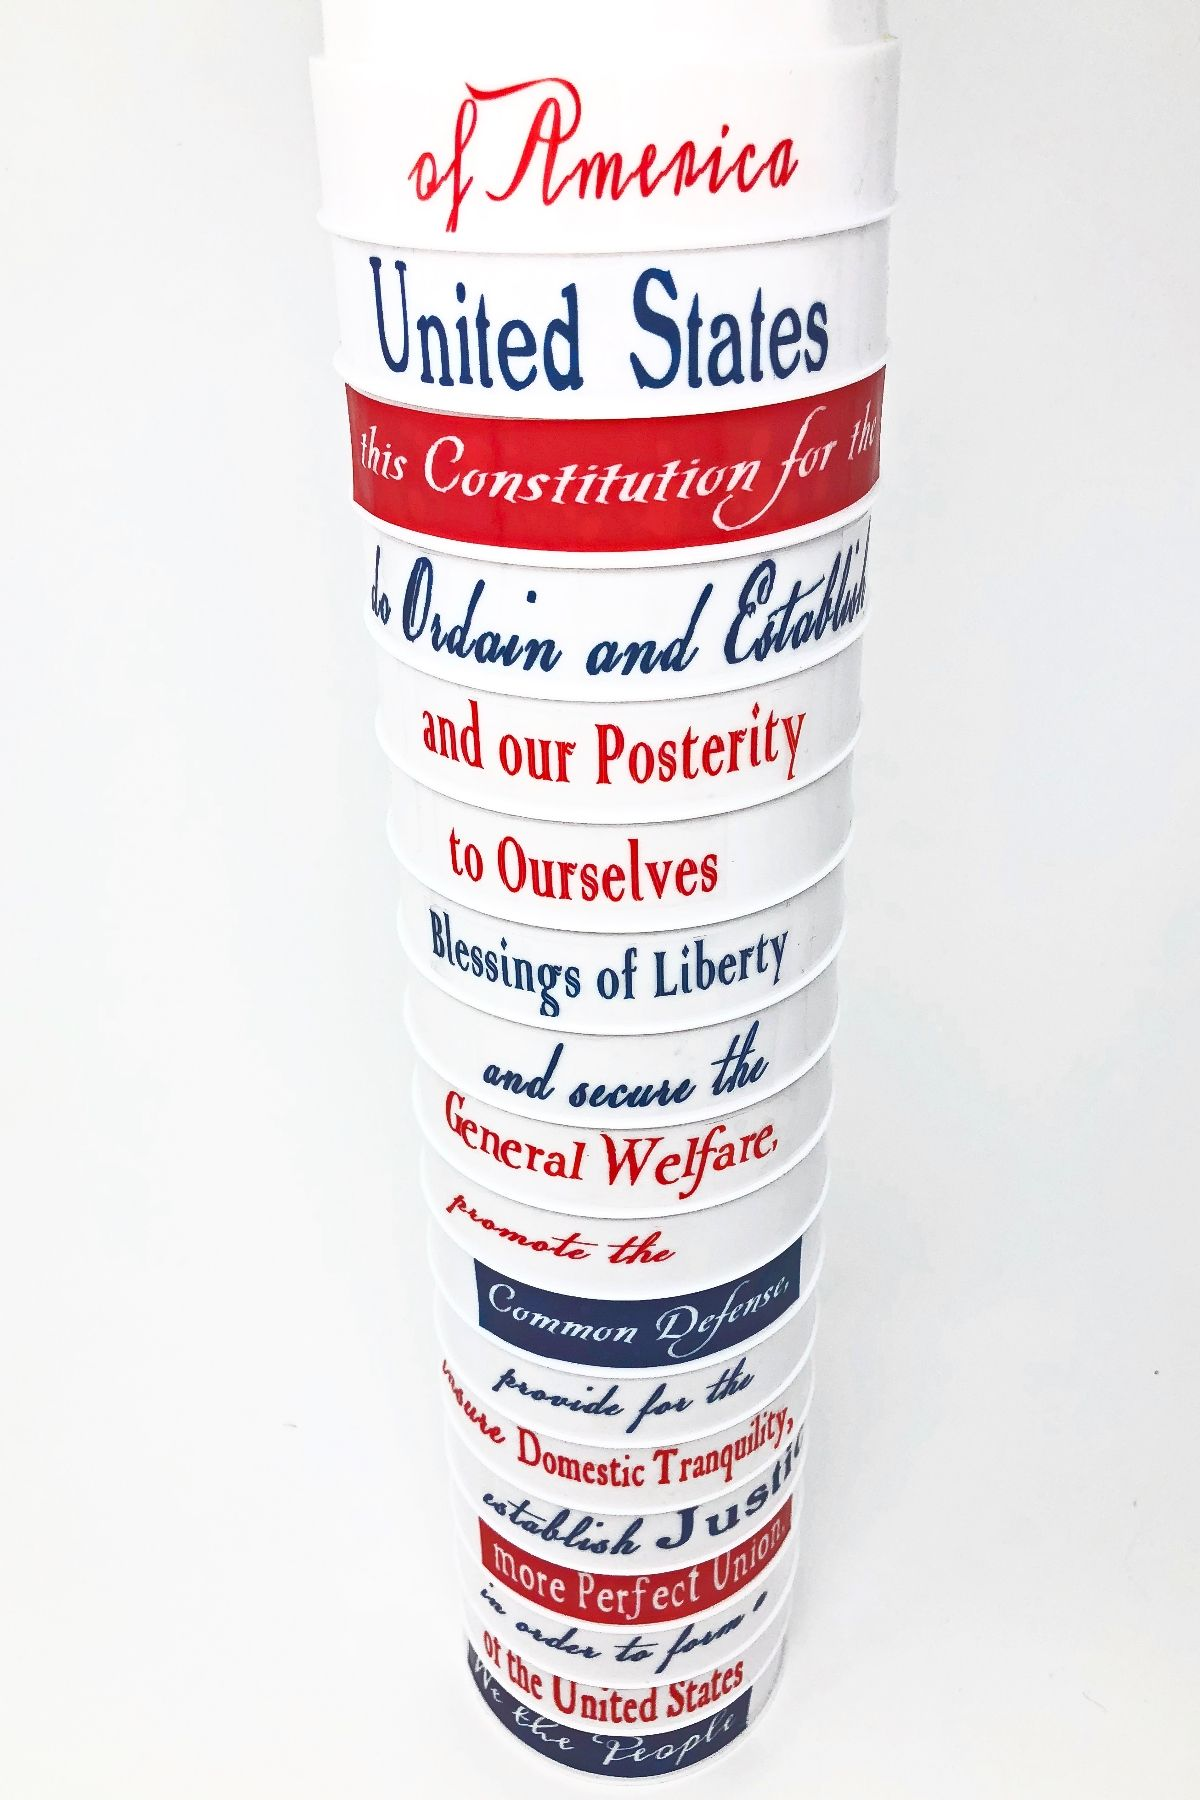 Constitution Day Preamble Stack Up